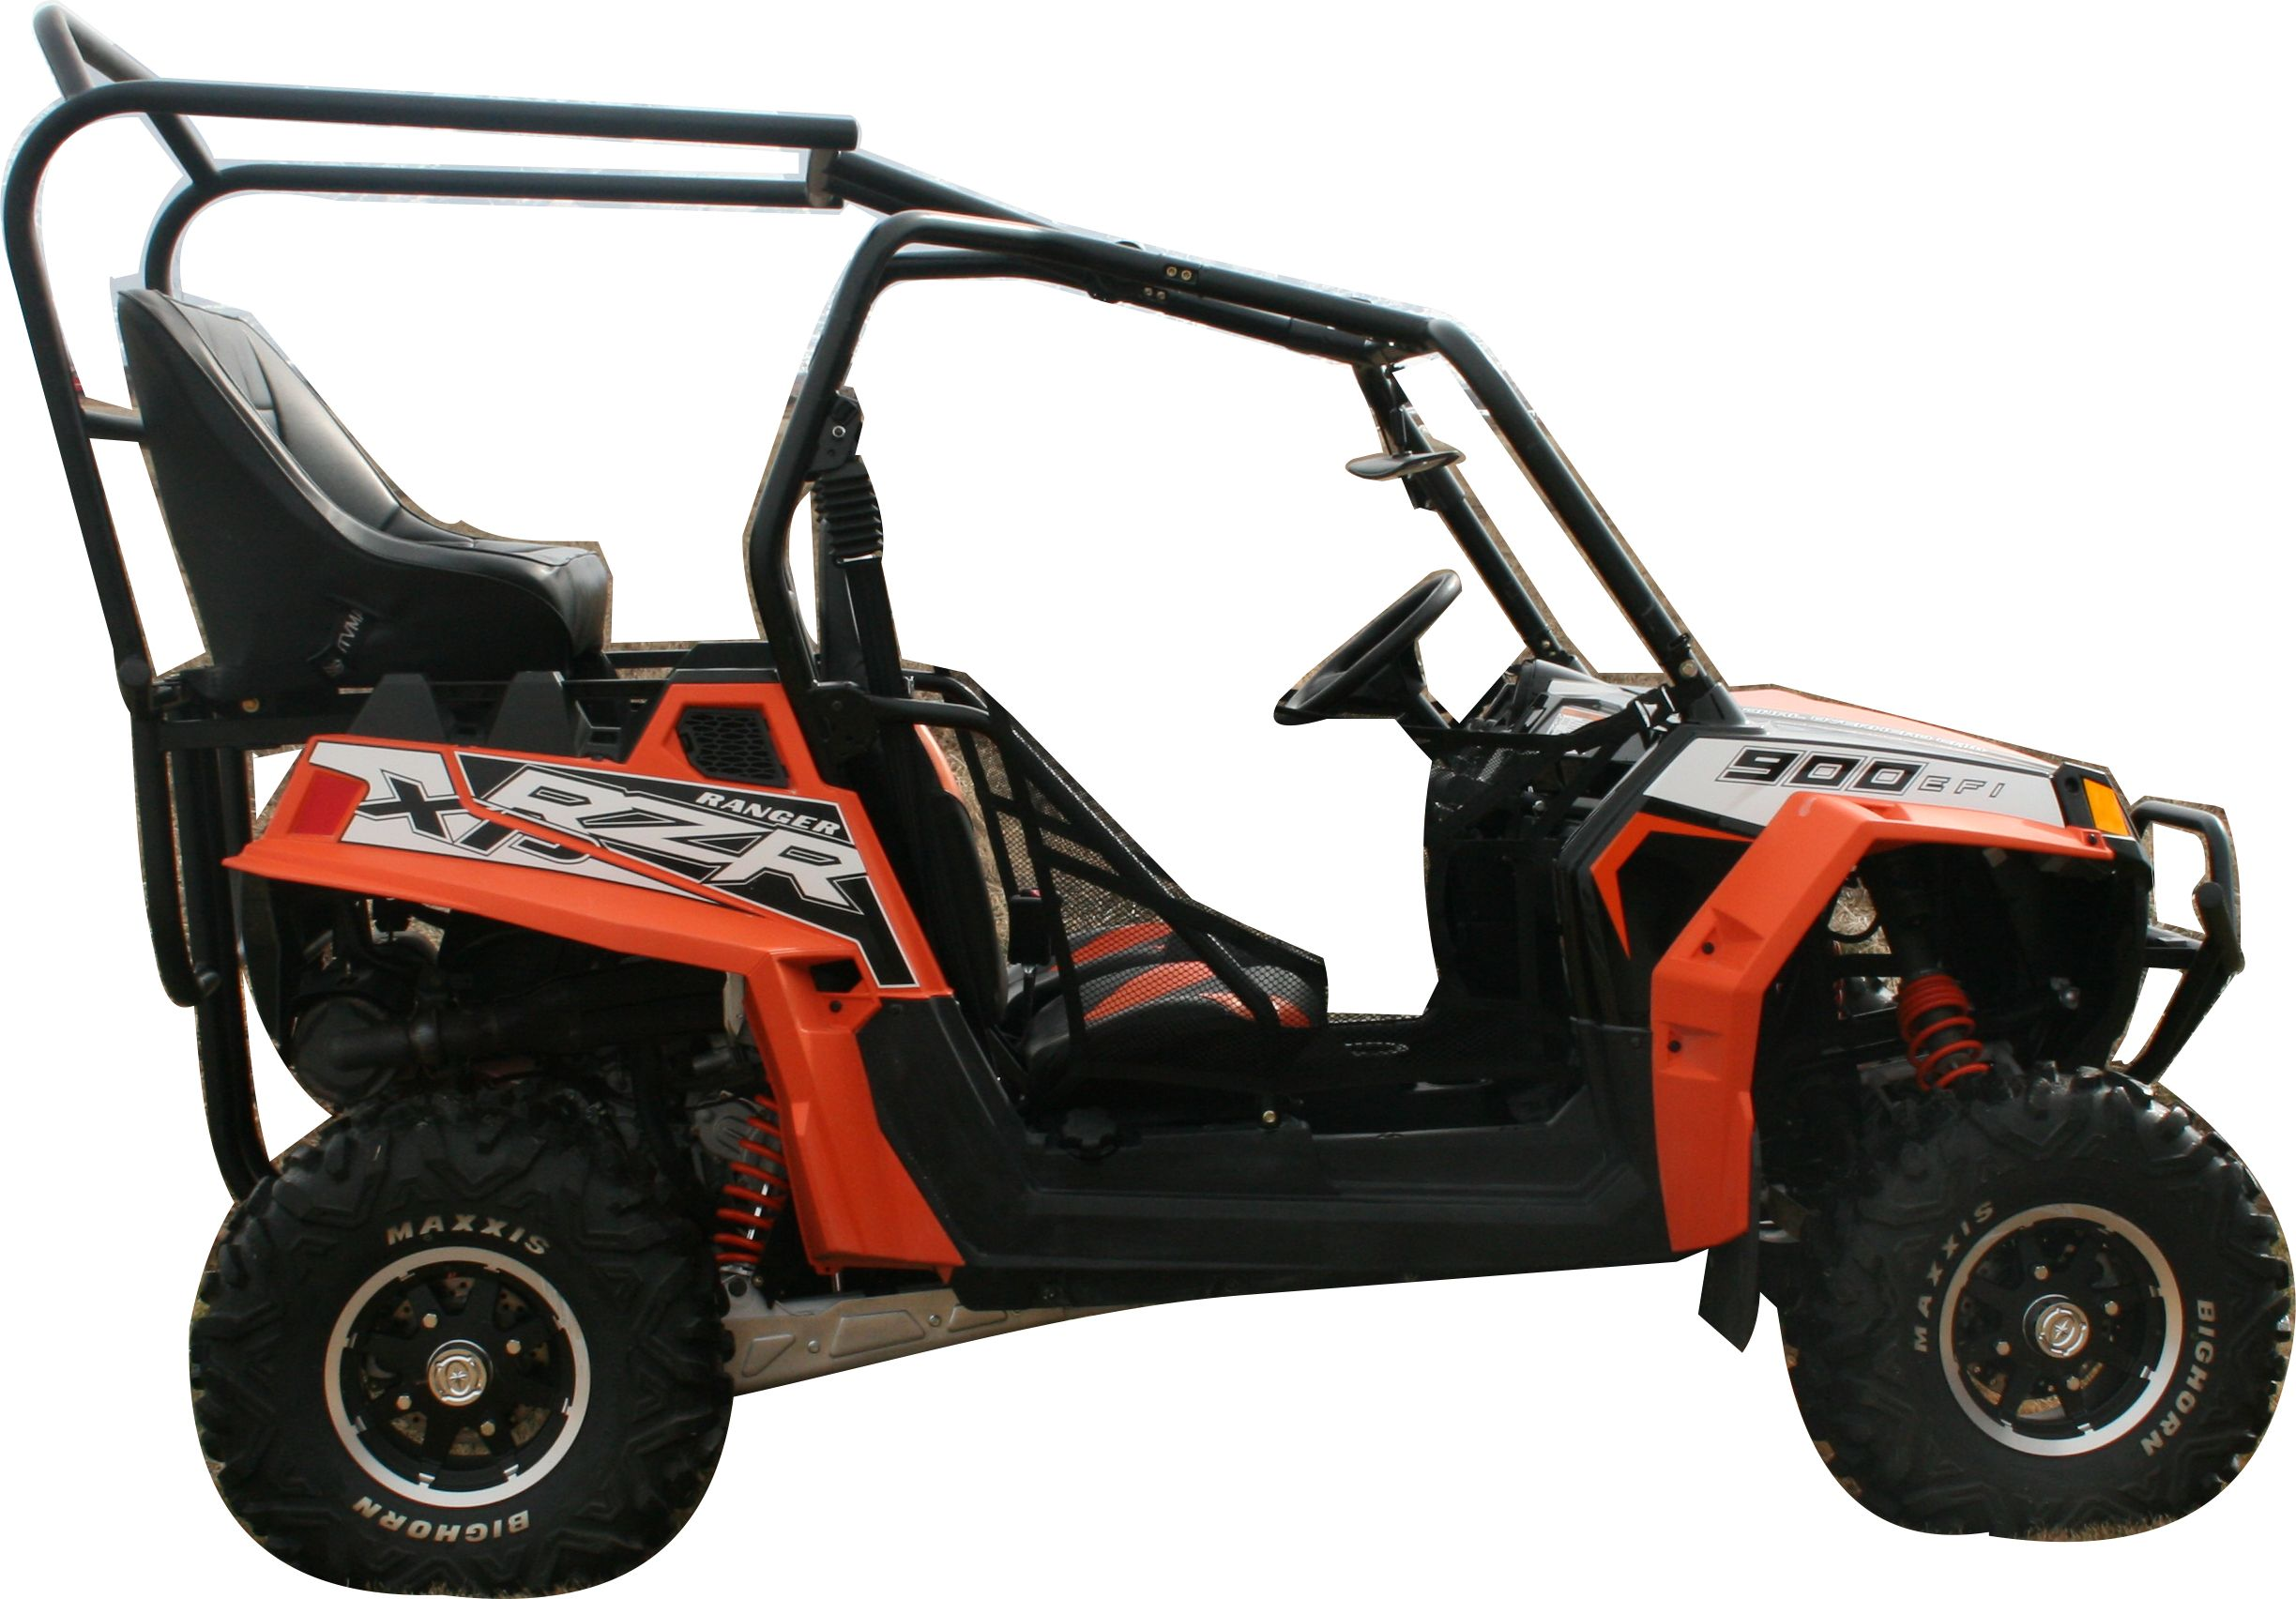 Polaris Rzr 900 Back Seat Roll Cage Kit Designed To Come